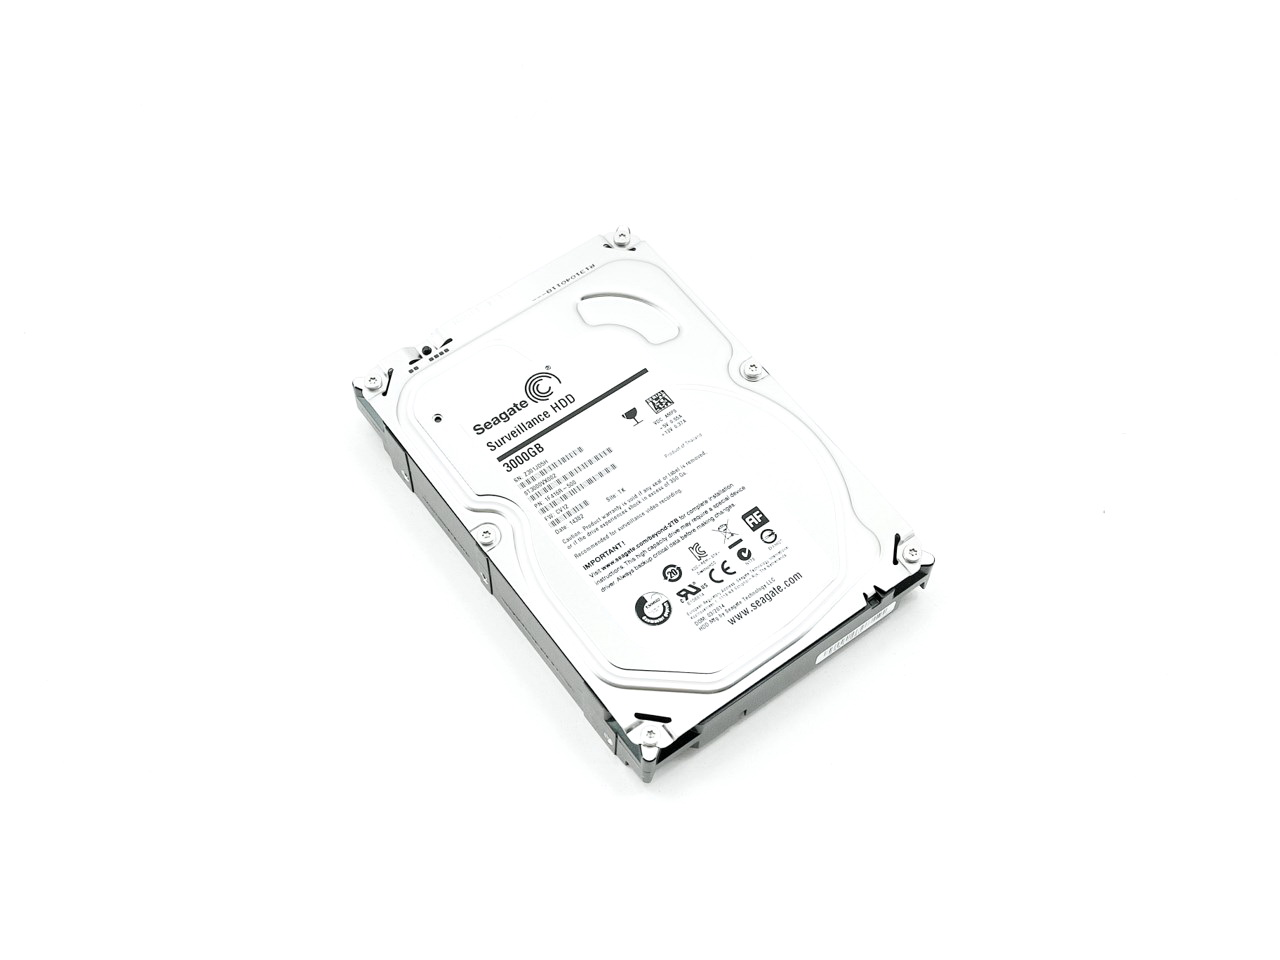 Seagate Surveillance 3TB SATA III HDD Review